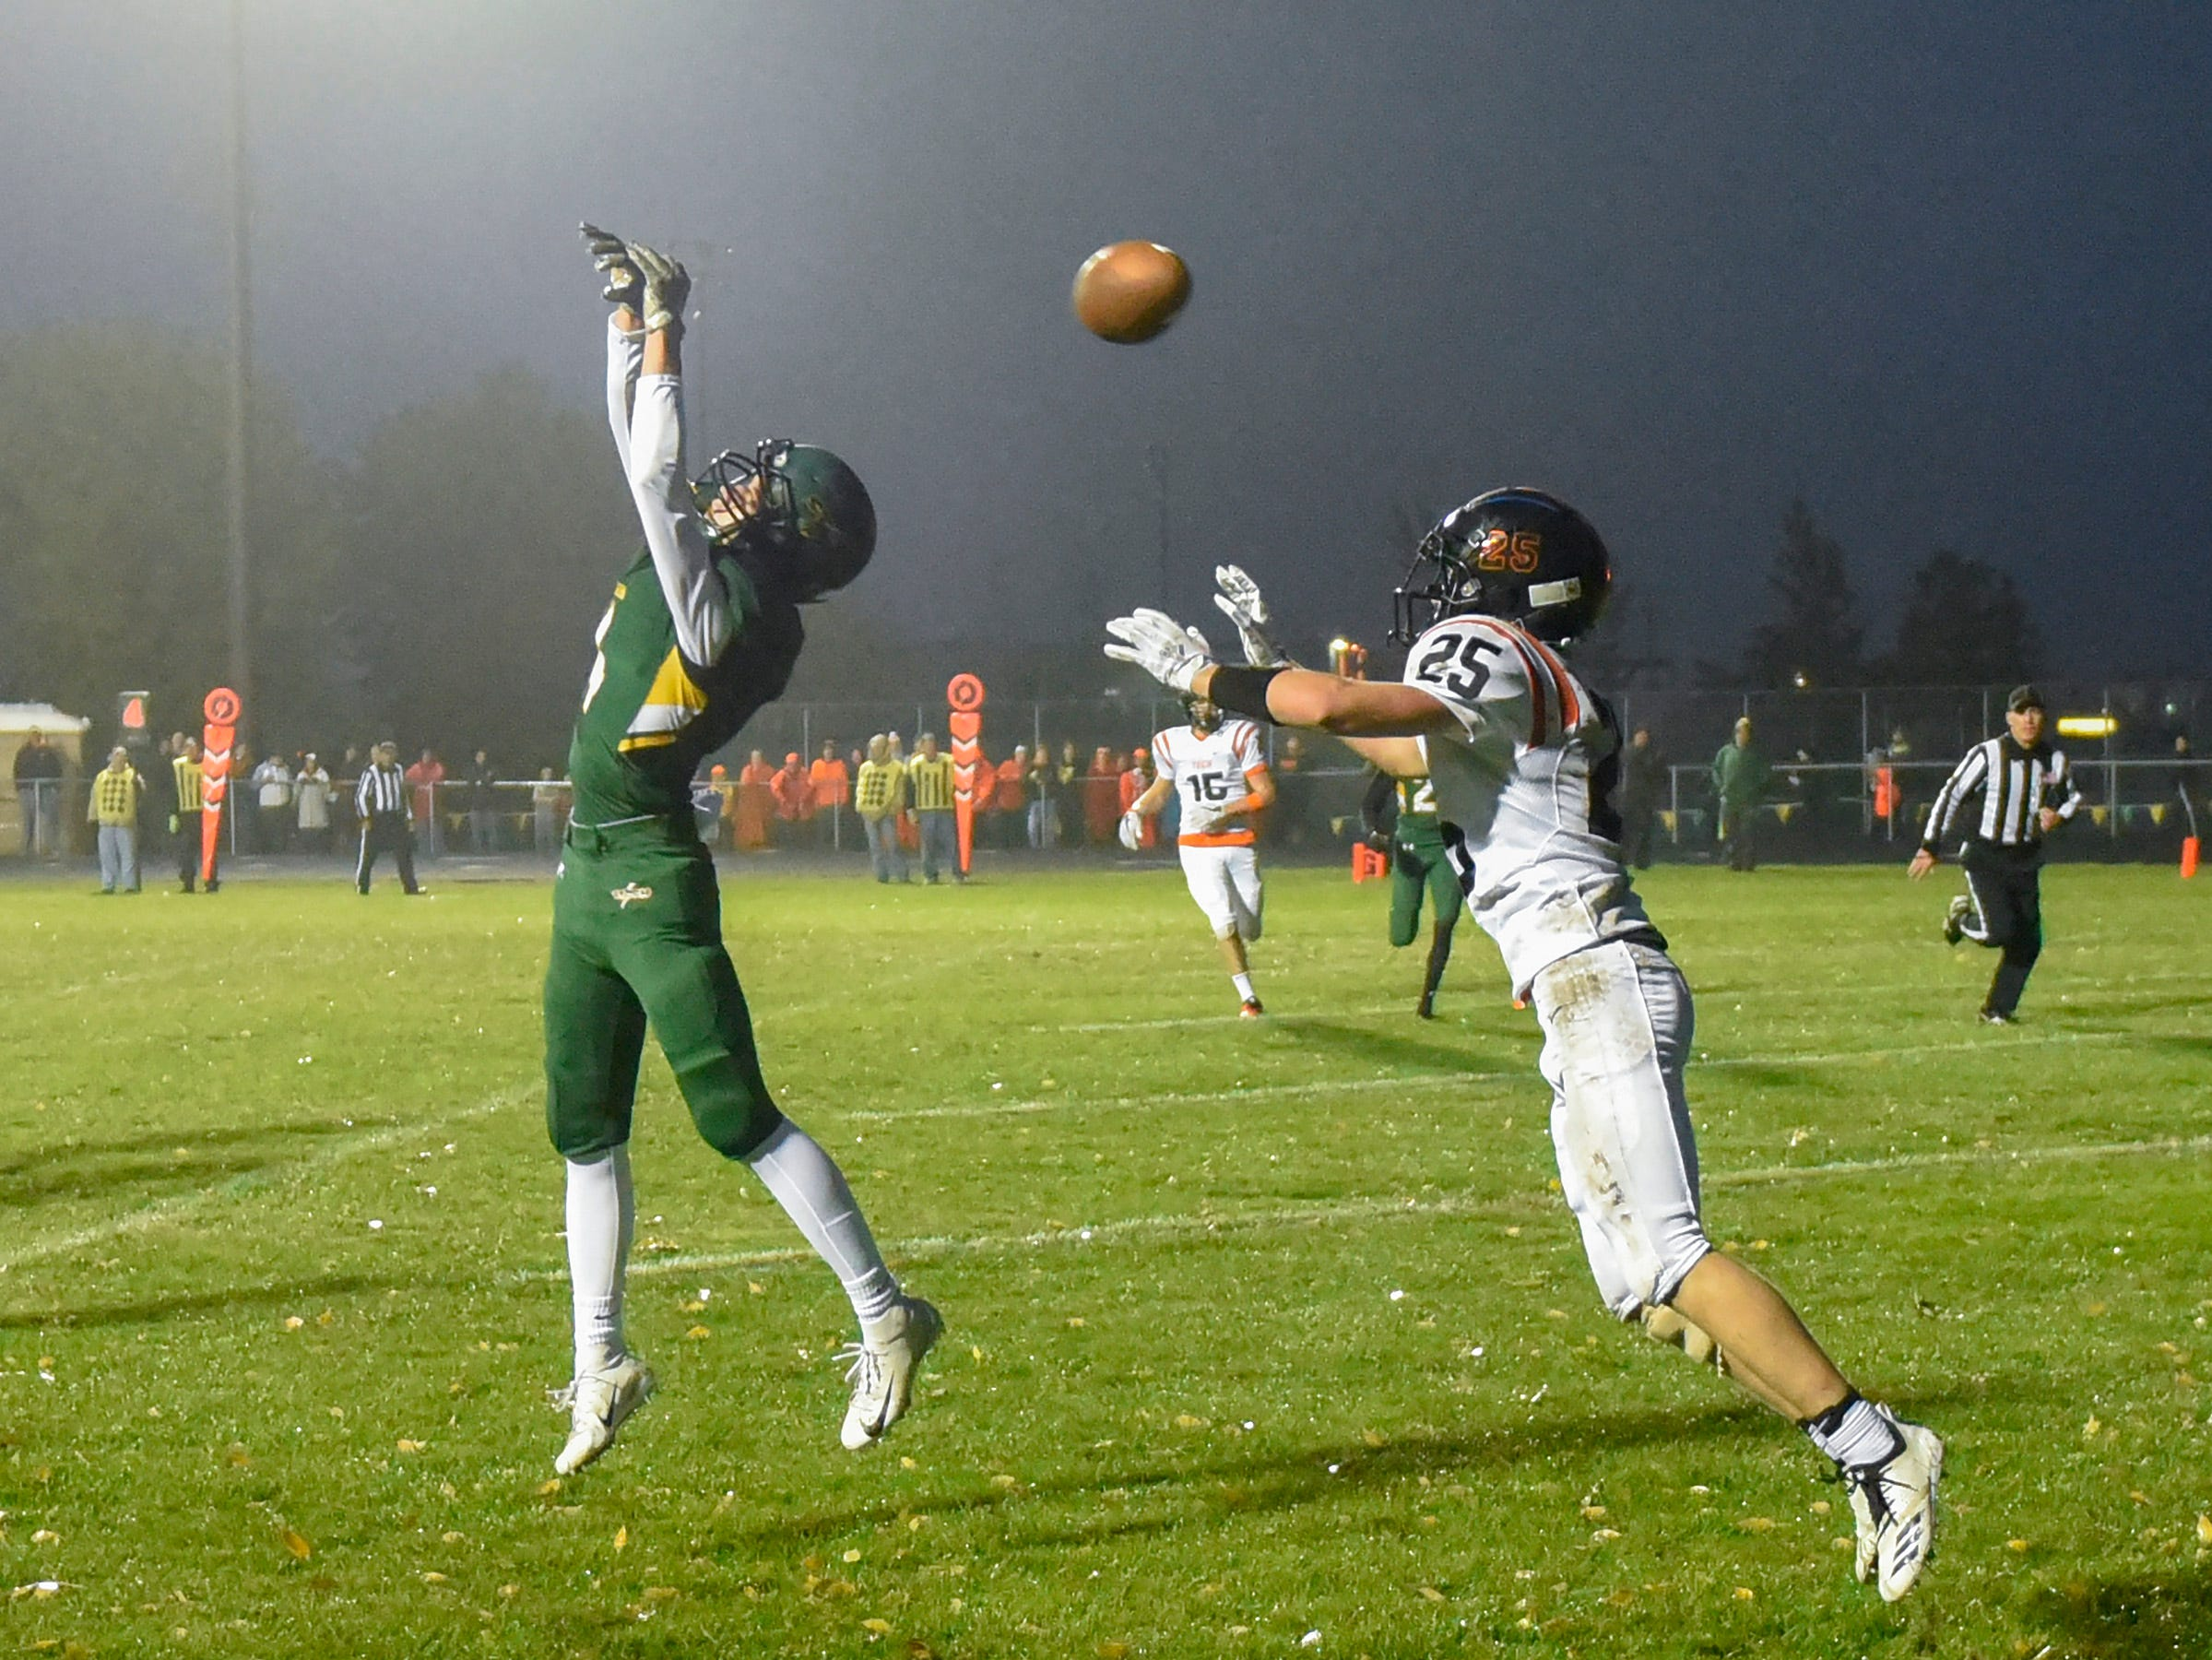 Sauk Rapids' Kobe Lee breaks up a pass to Tech's Hunter Stulz in the end zone during the first half Friday, Oct. 5, in Sauk Rapids.